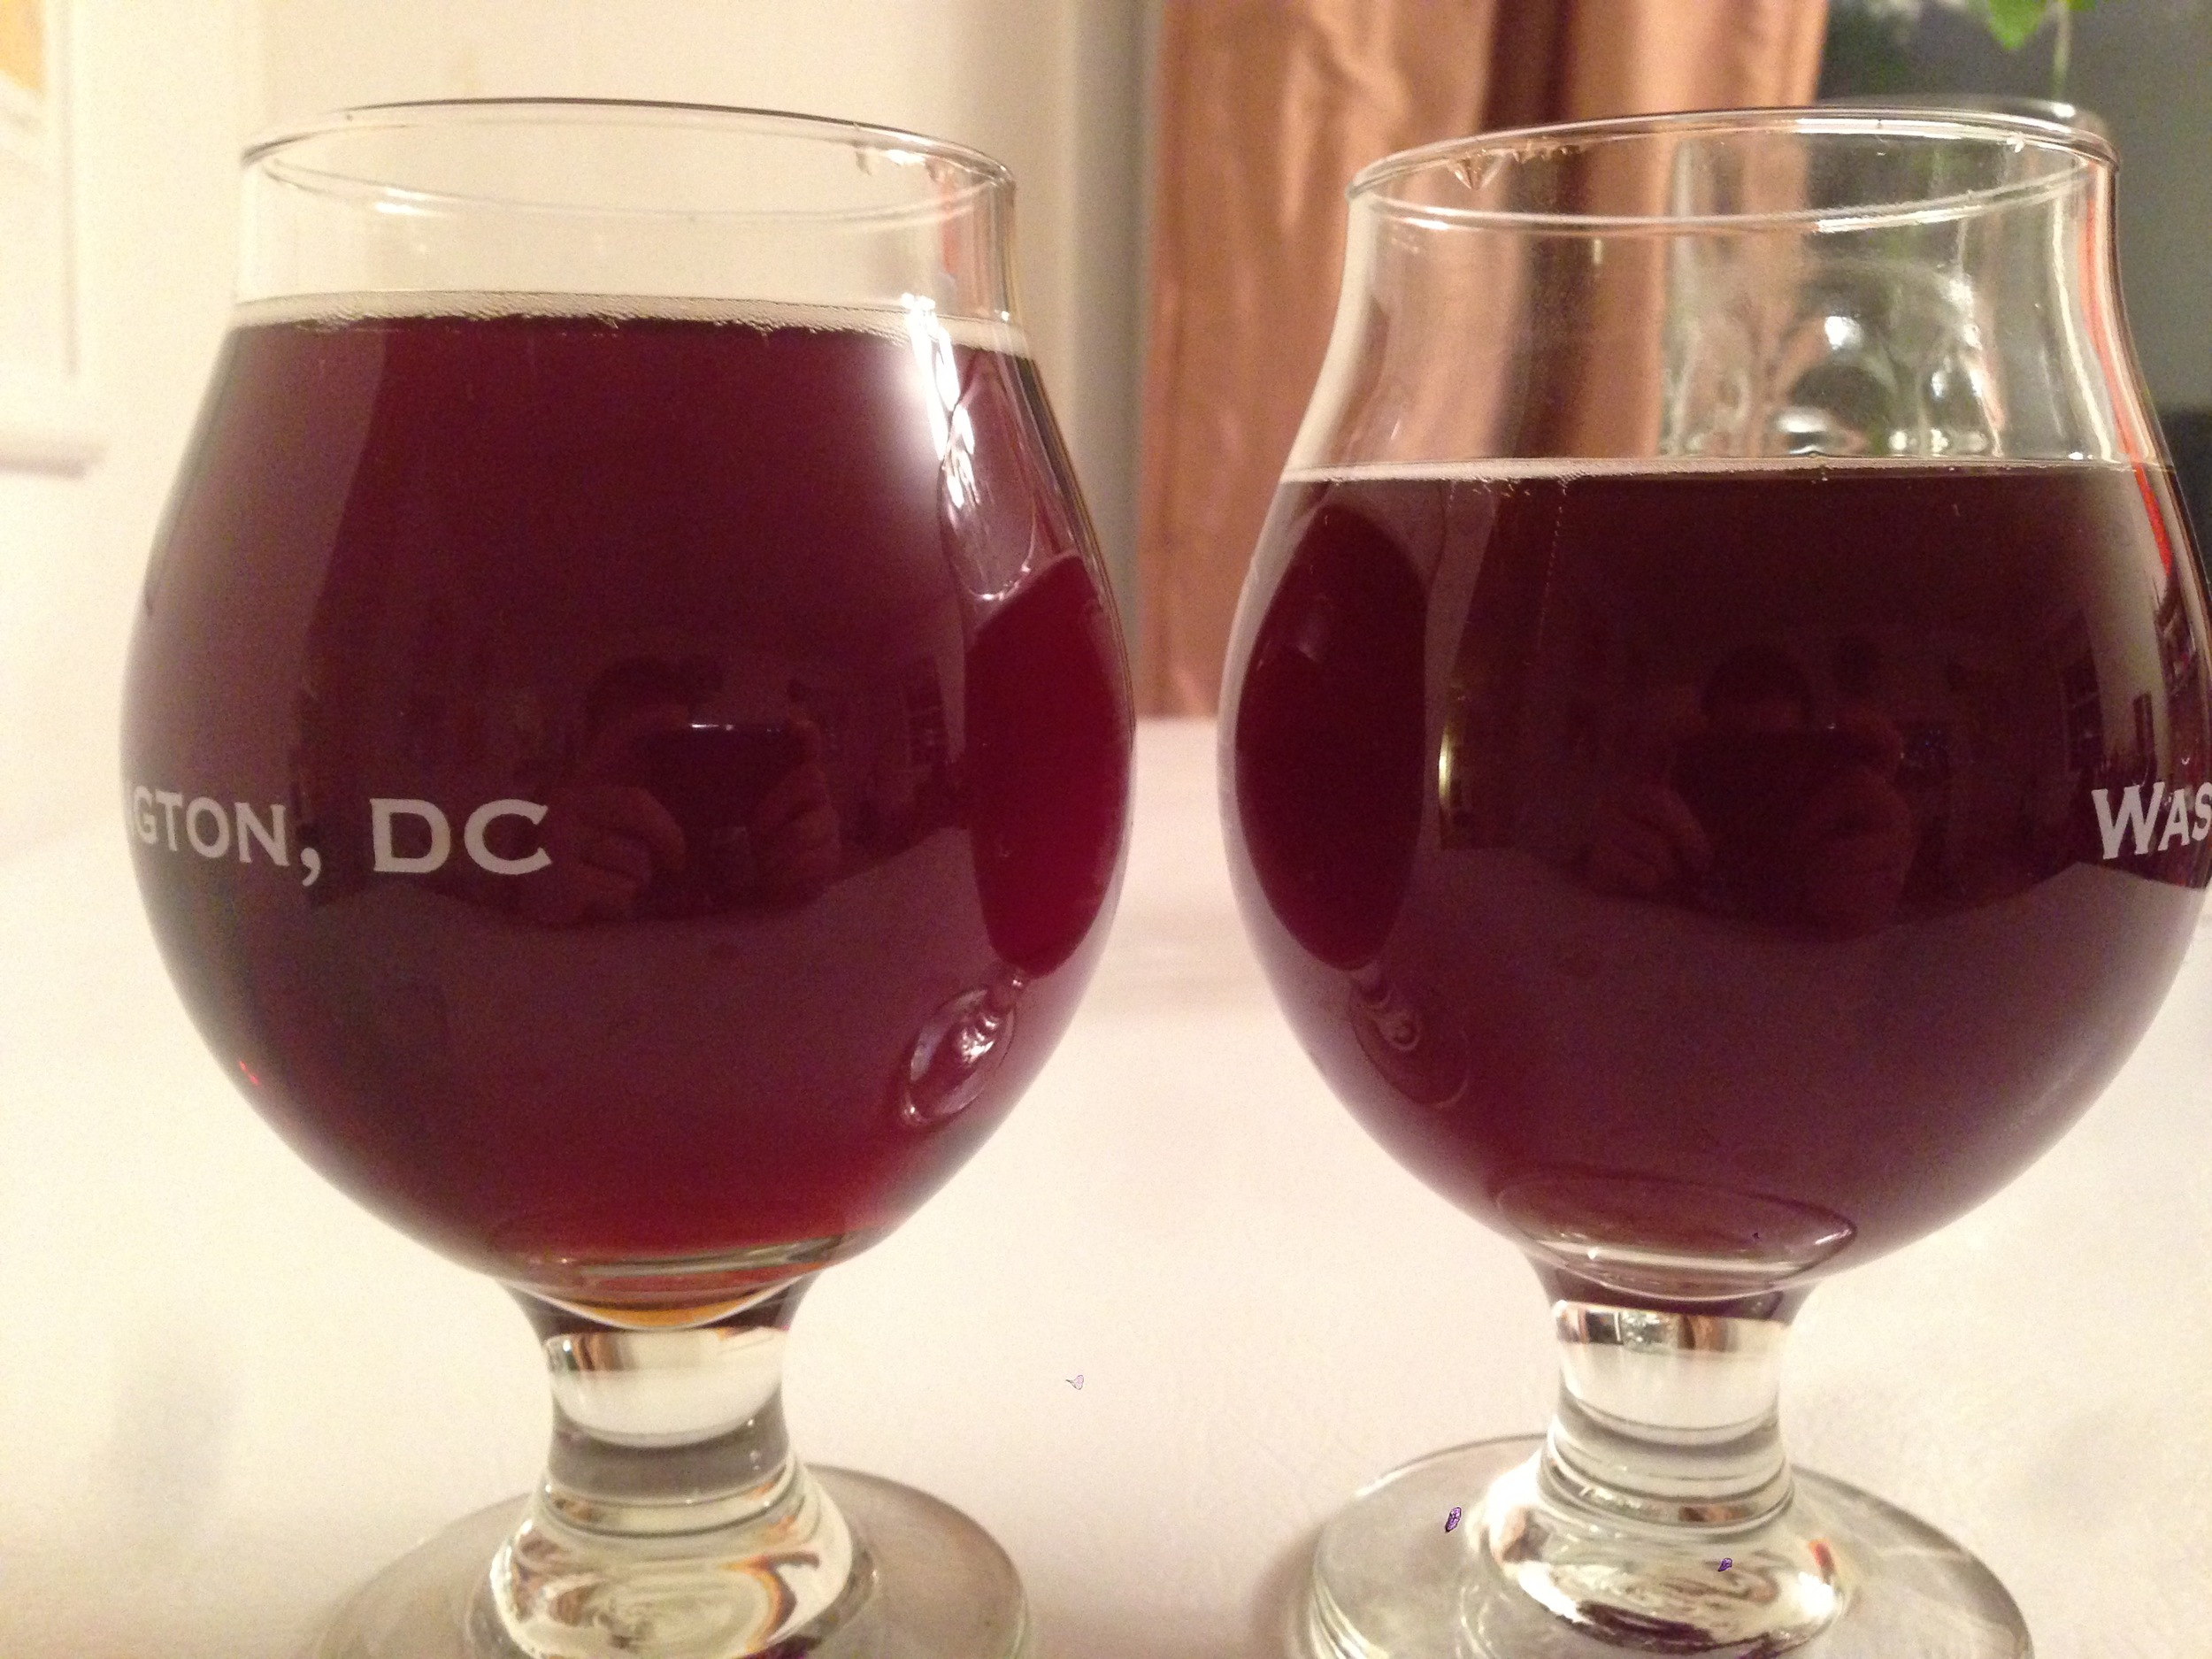 RUSSIAN RIVER LEFT, MY CLONE RIGHT